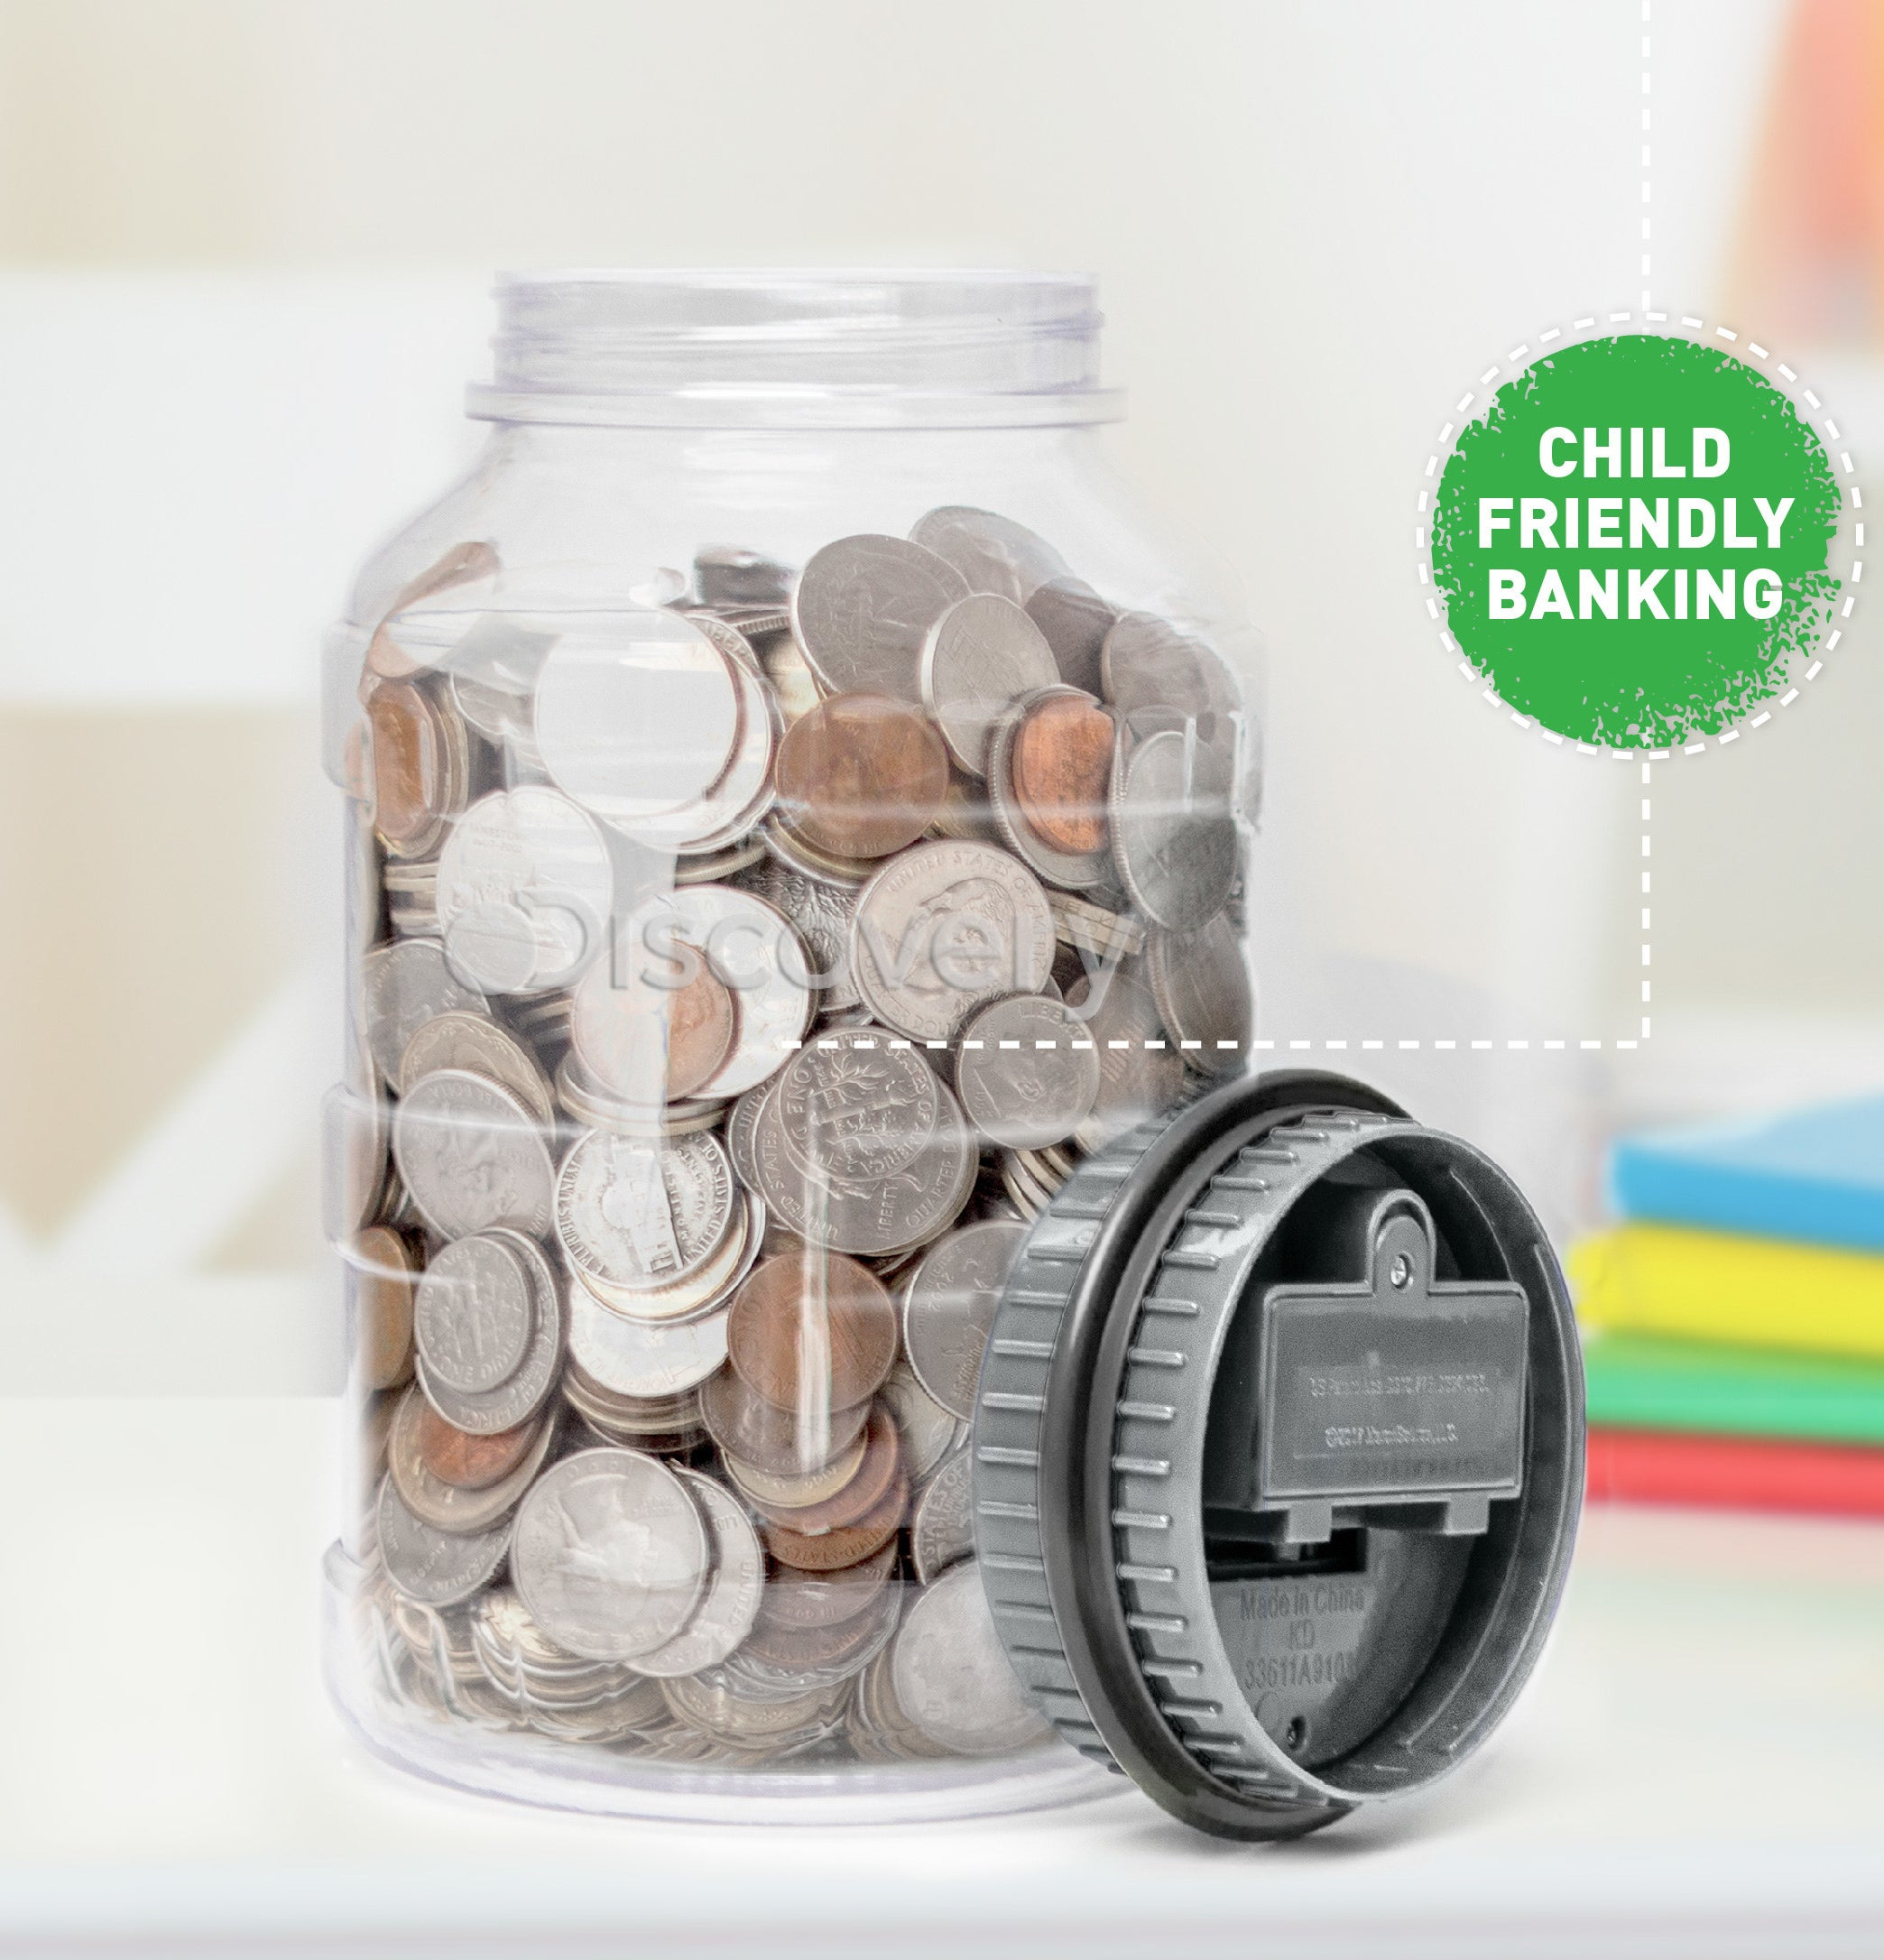 the clear coin counting jar